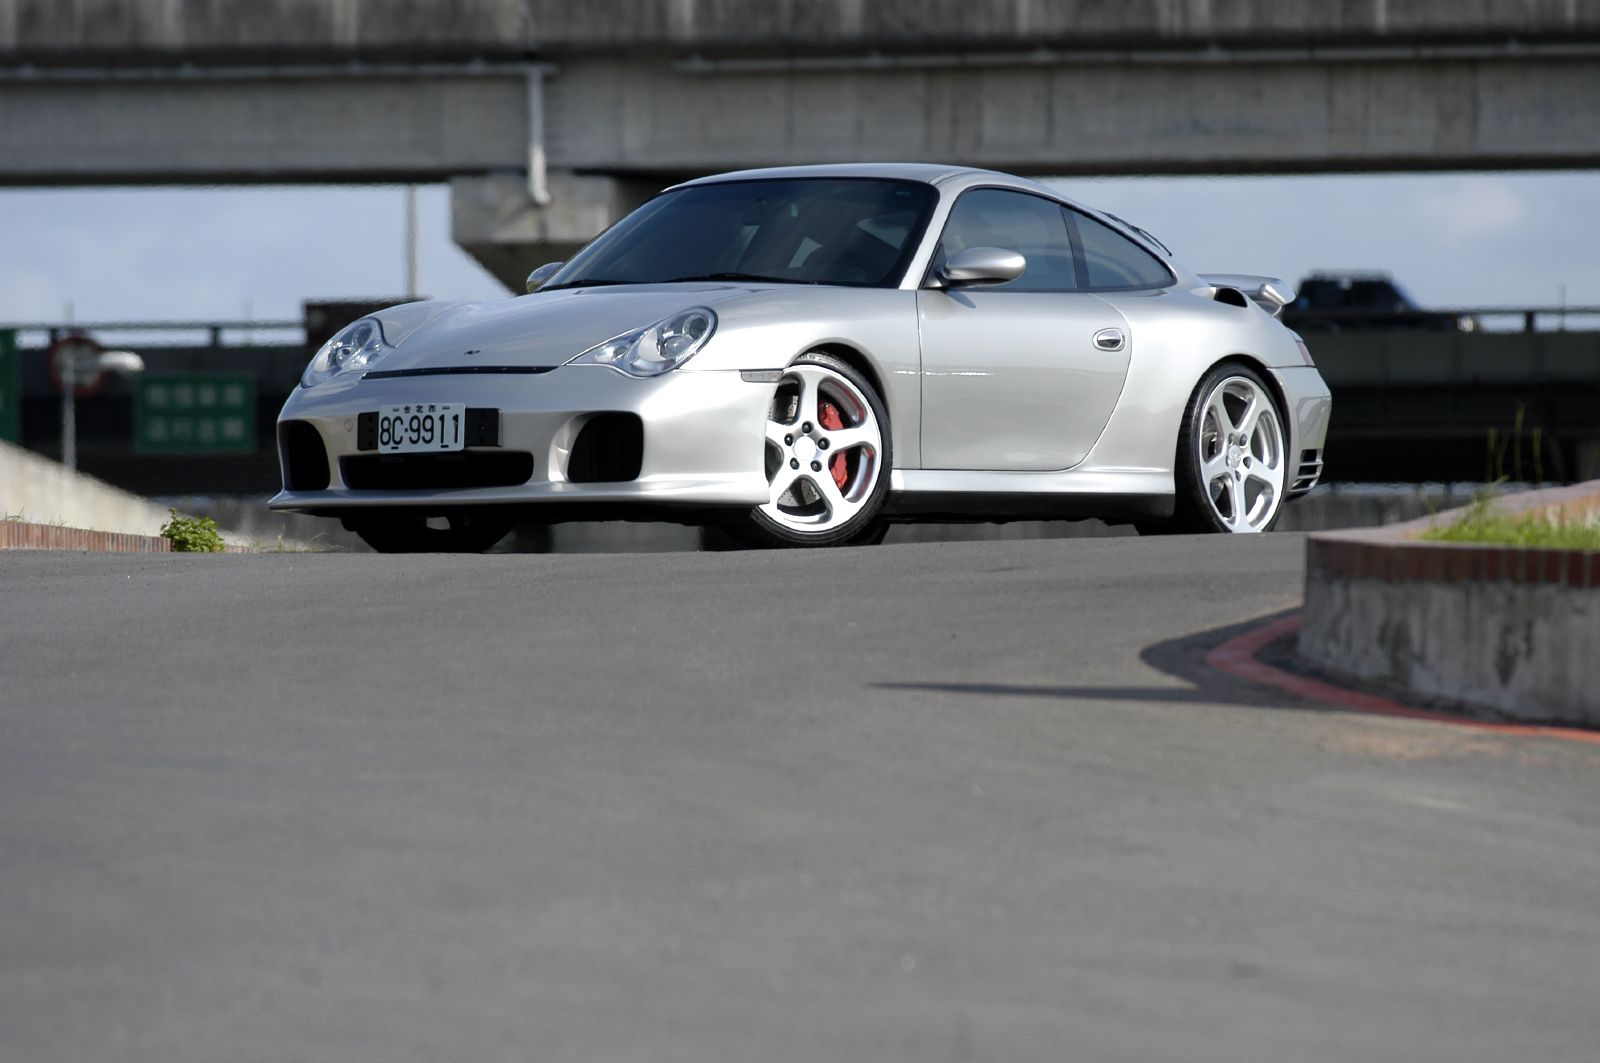 Ruf_R_turbo_based_on_Porsche_996_turbo.j